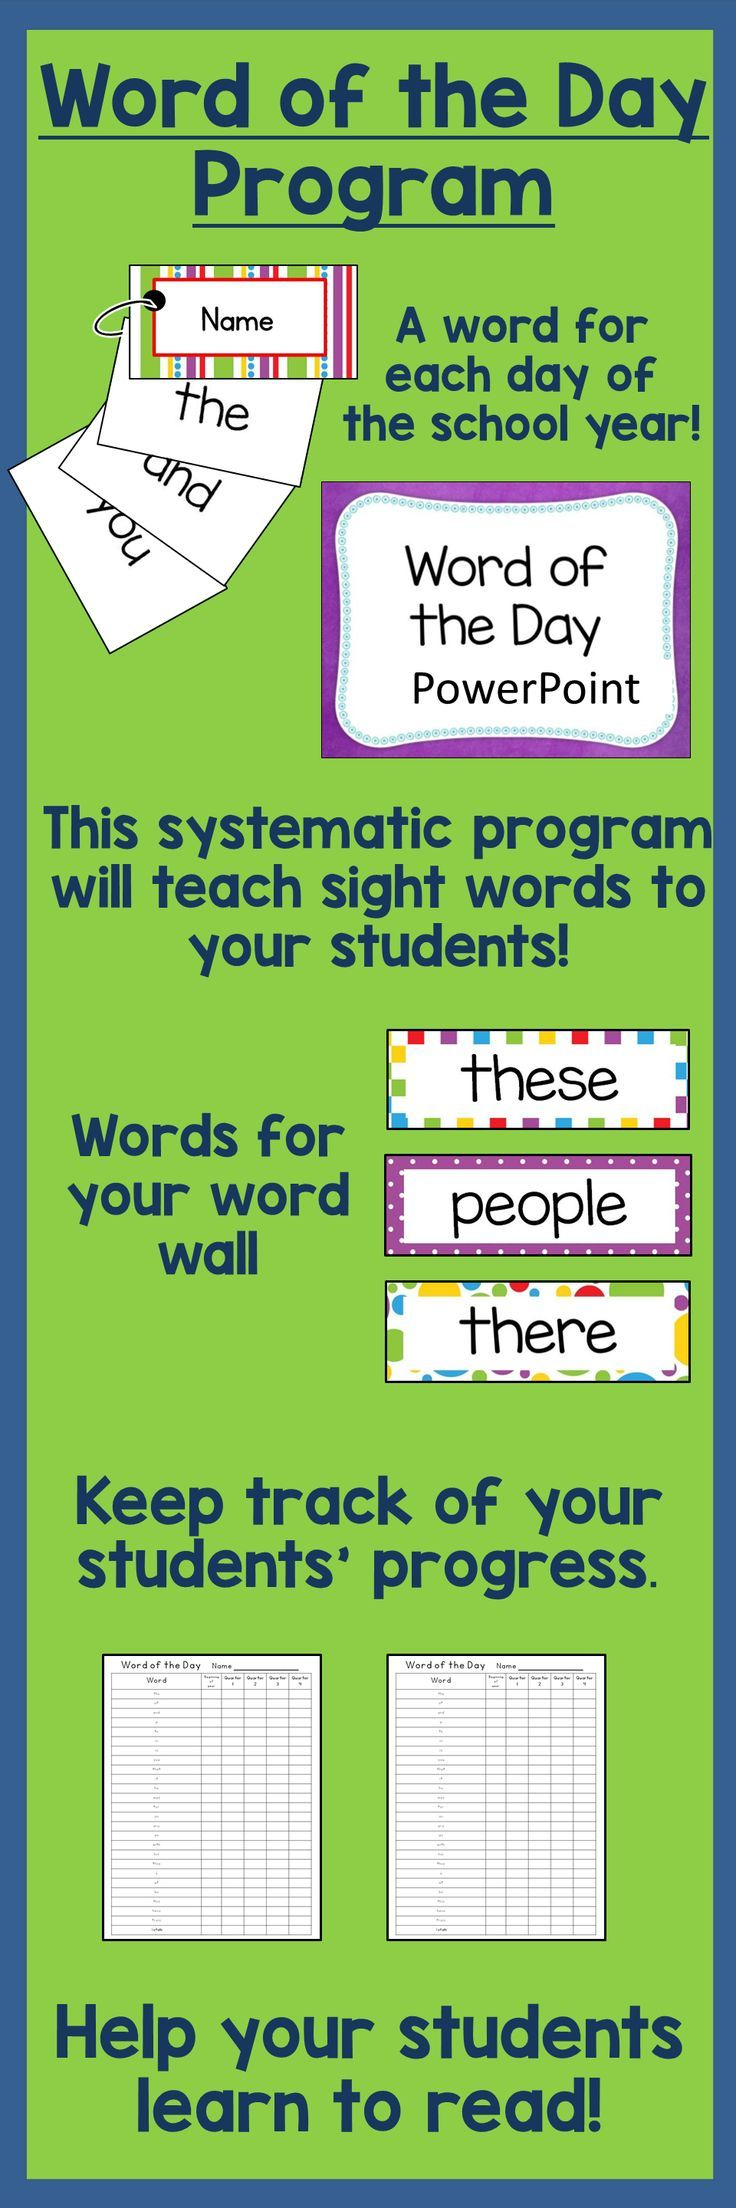 Worksheet Sight Word Program 17 best ideas about word program on pinterest kindergarten sight words are easy with the of day your students will increase